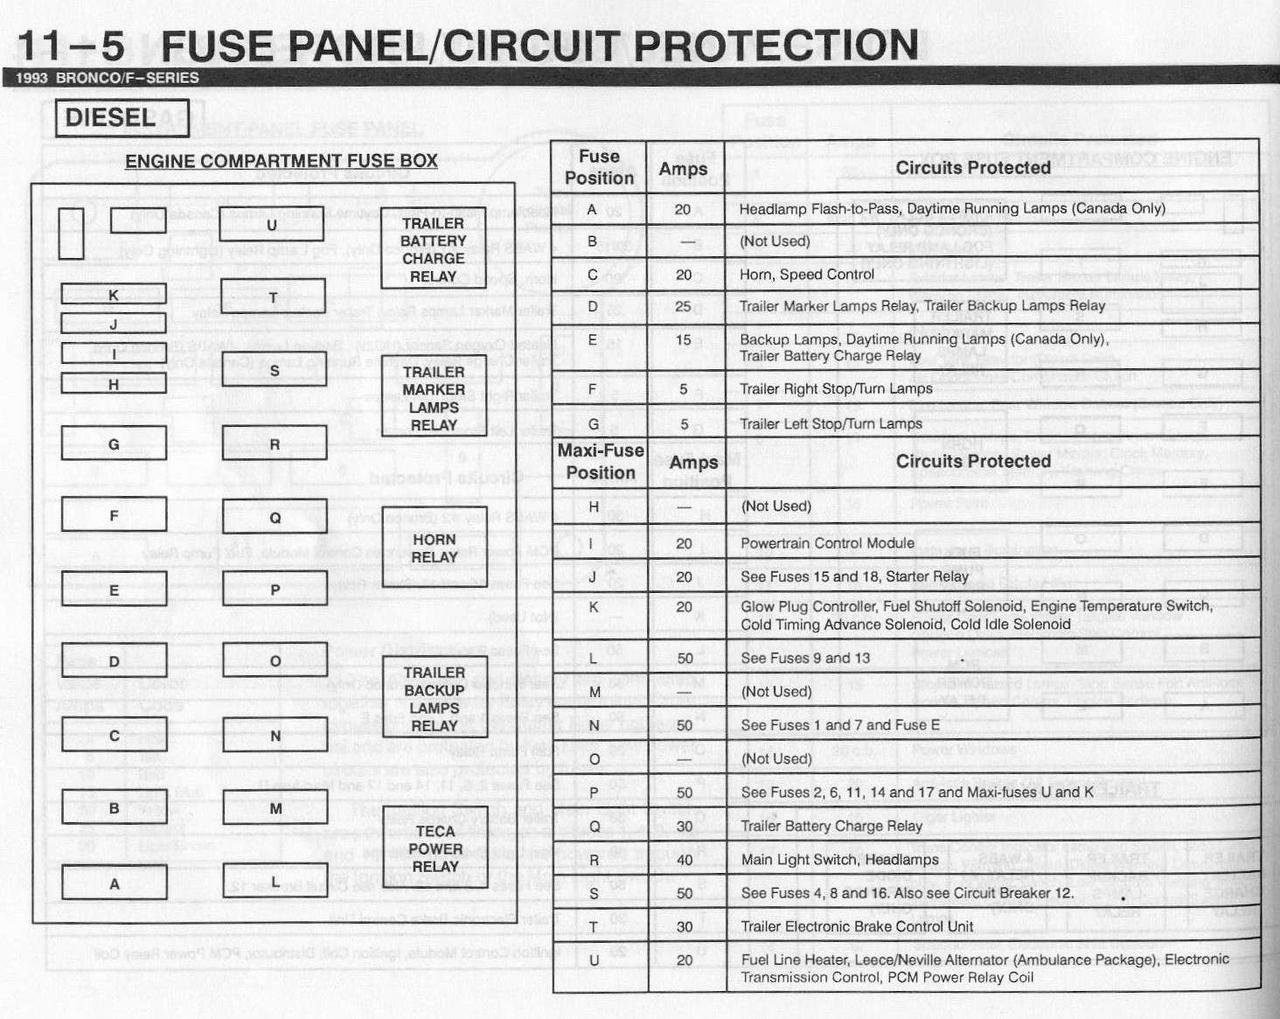 1992 F150 Fuse Panel Diagram - 2 4 Liter Mitsubishi Engine Diagram for  Wiring Diagram SchematicsWiring Diagram Schematics